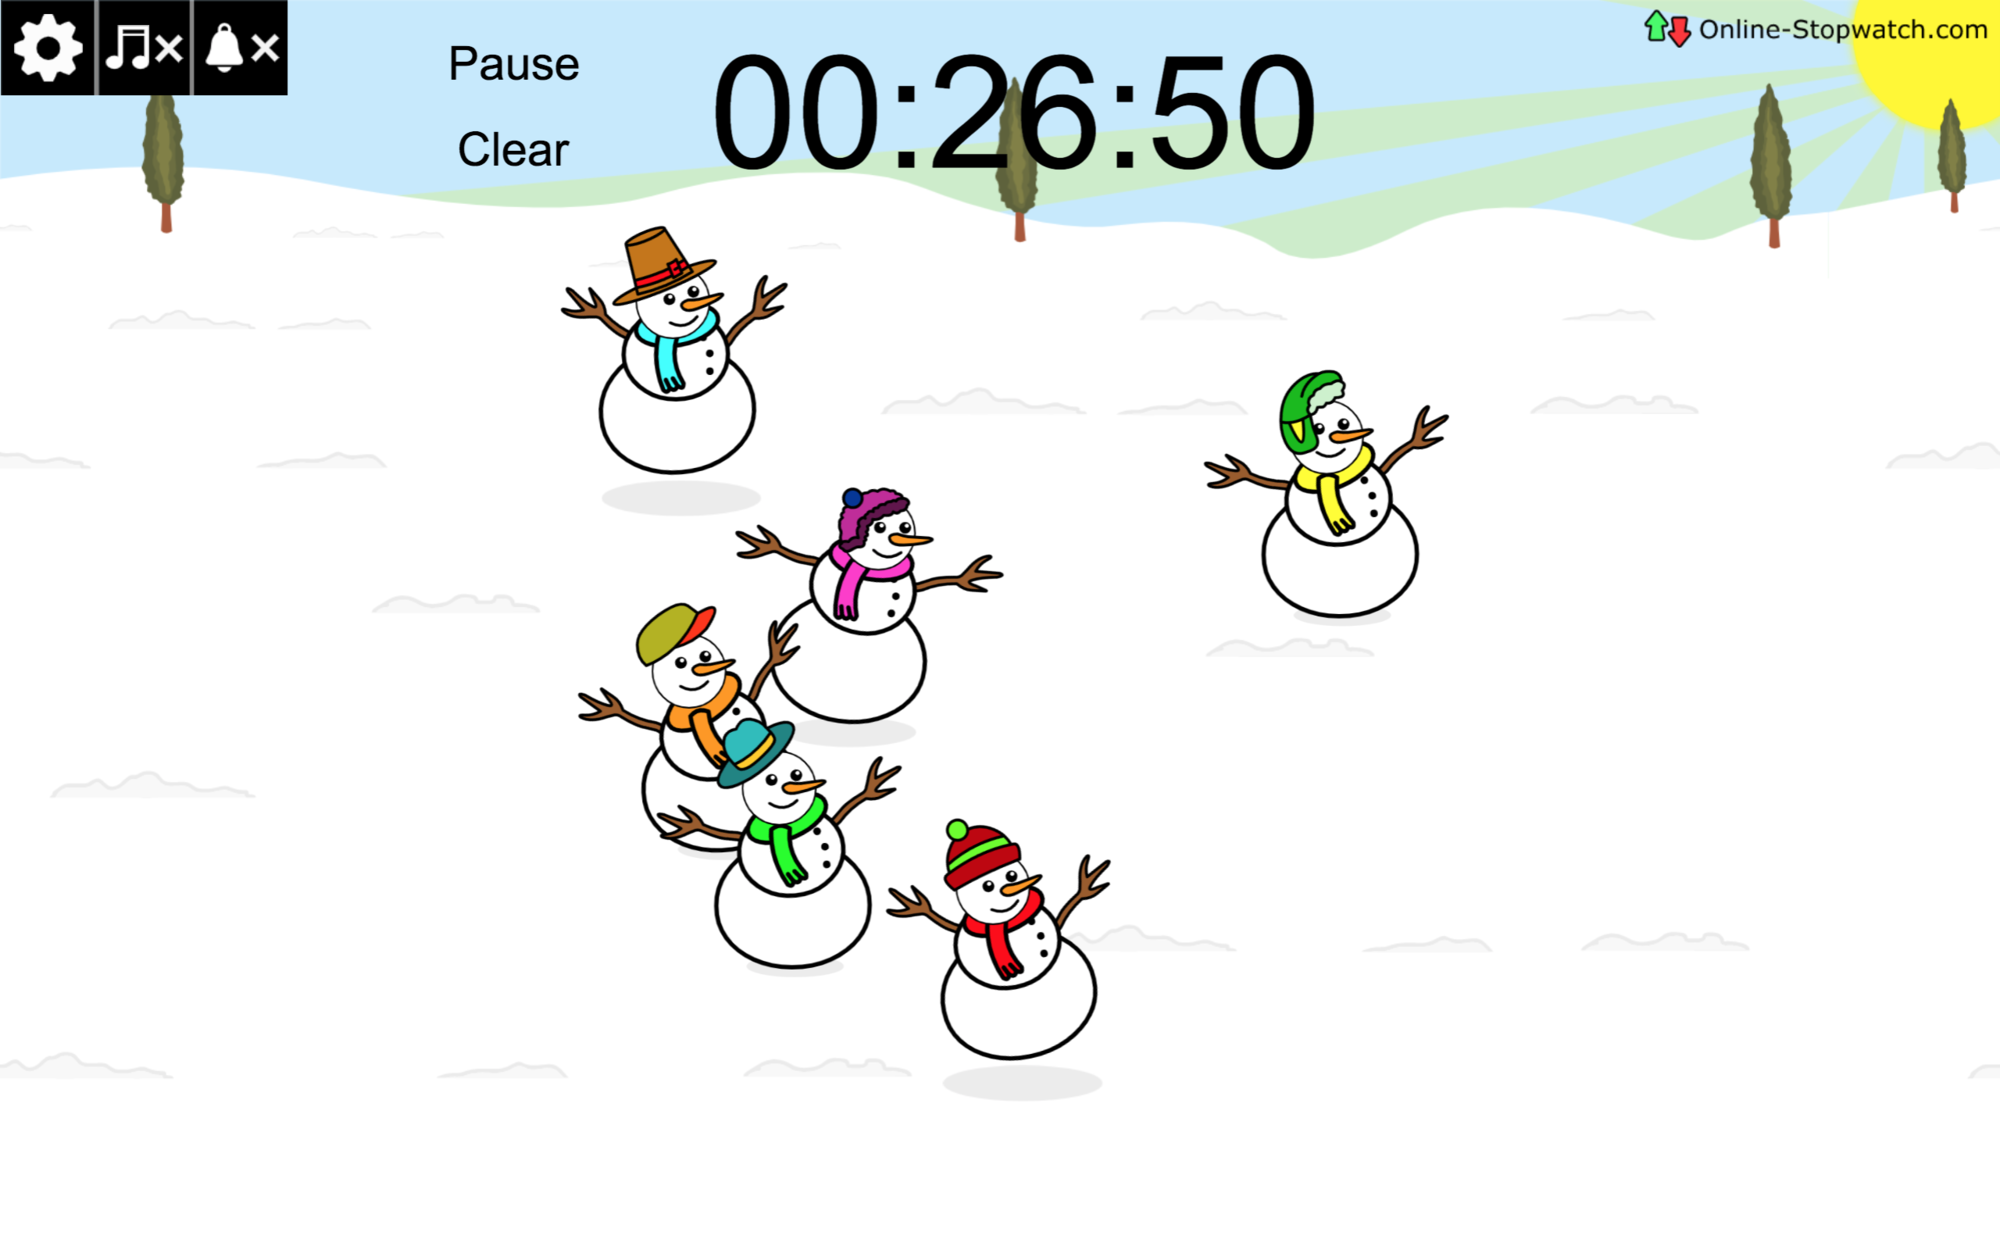 project a countdown timer for the escape room activity - this snowman timer fits the winter theme